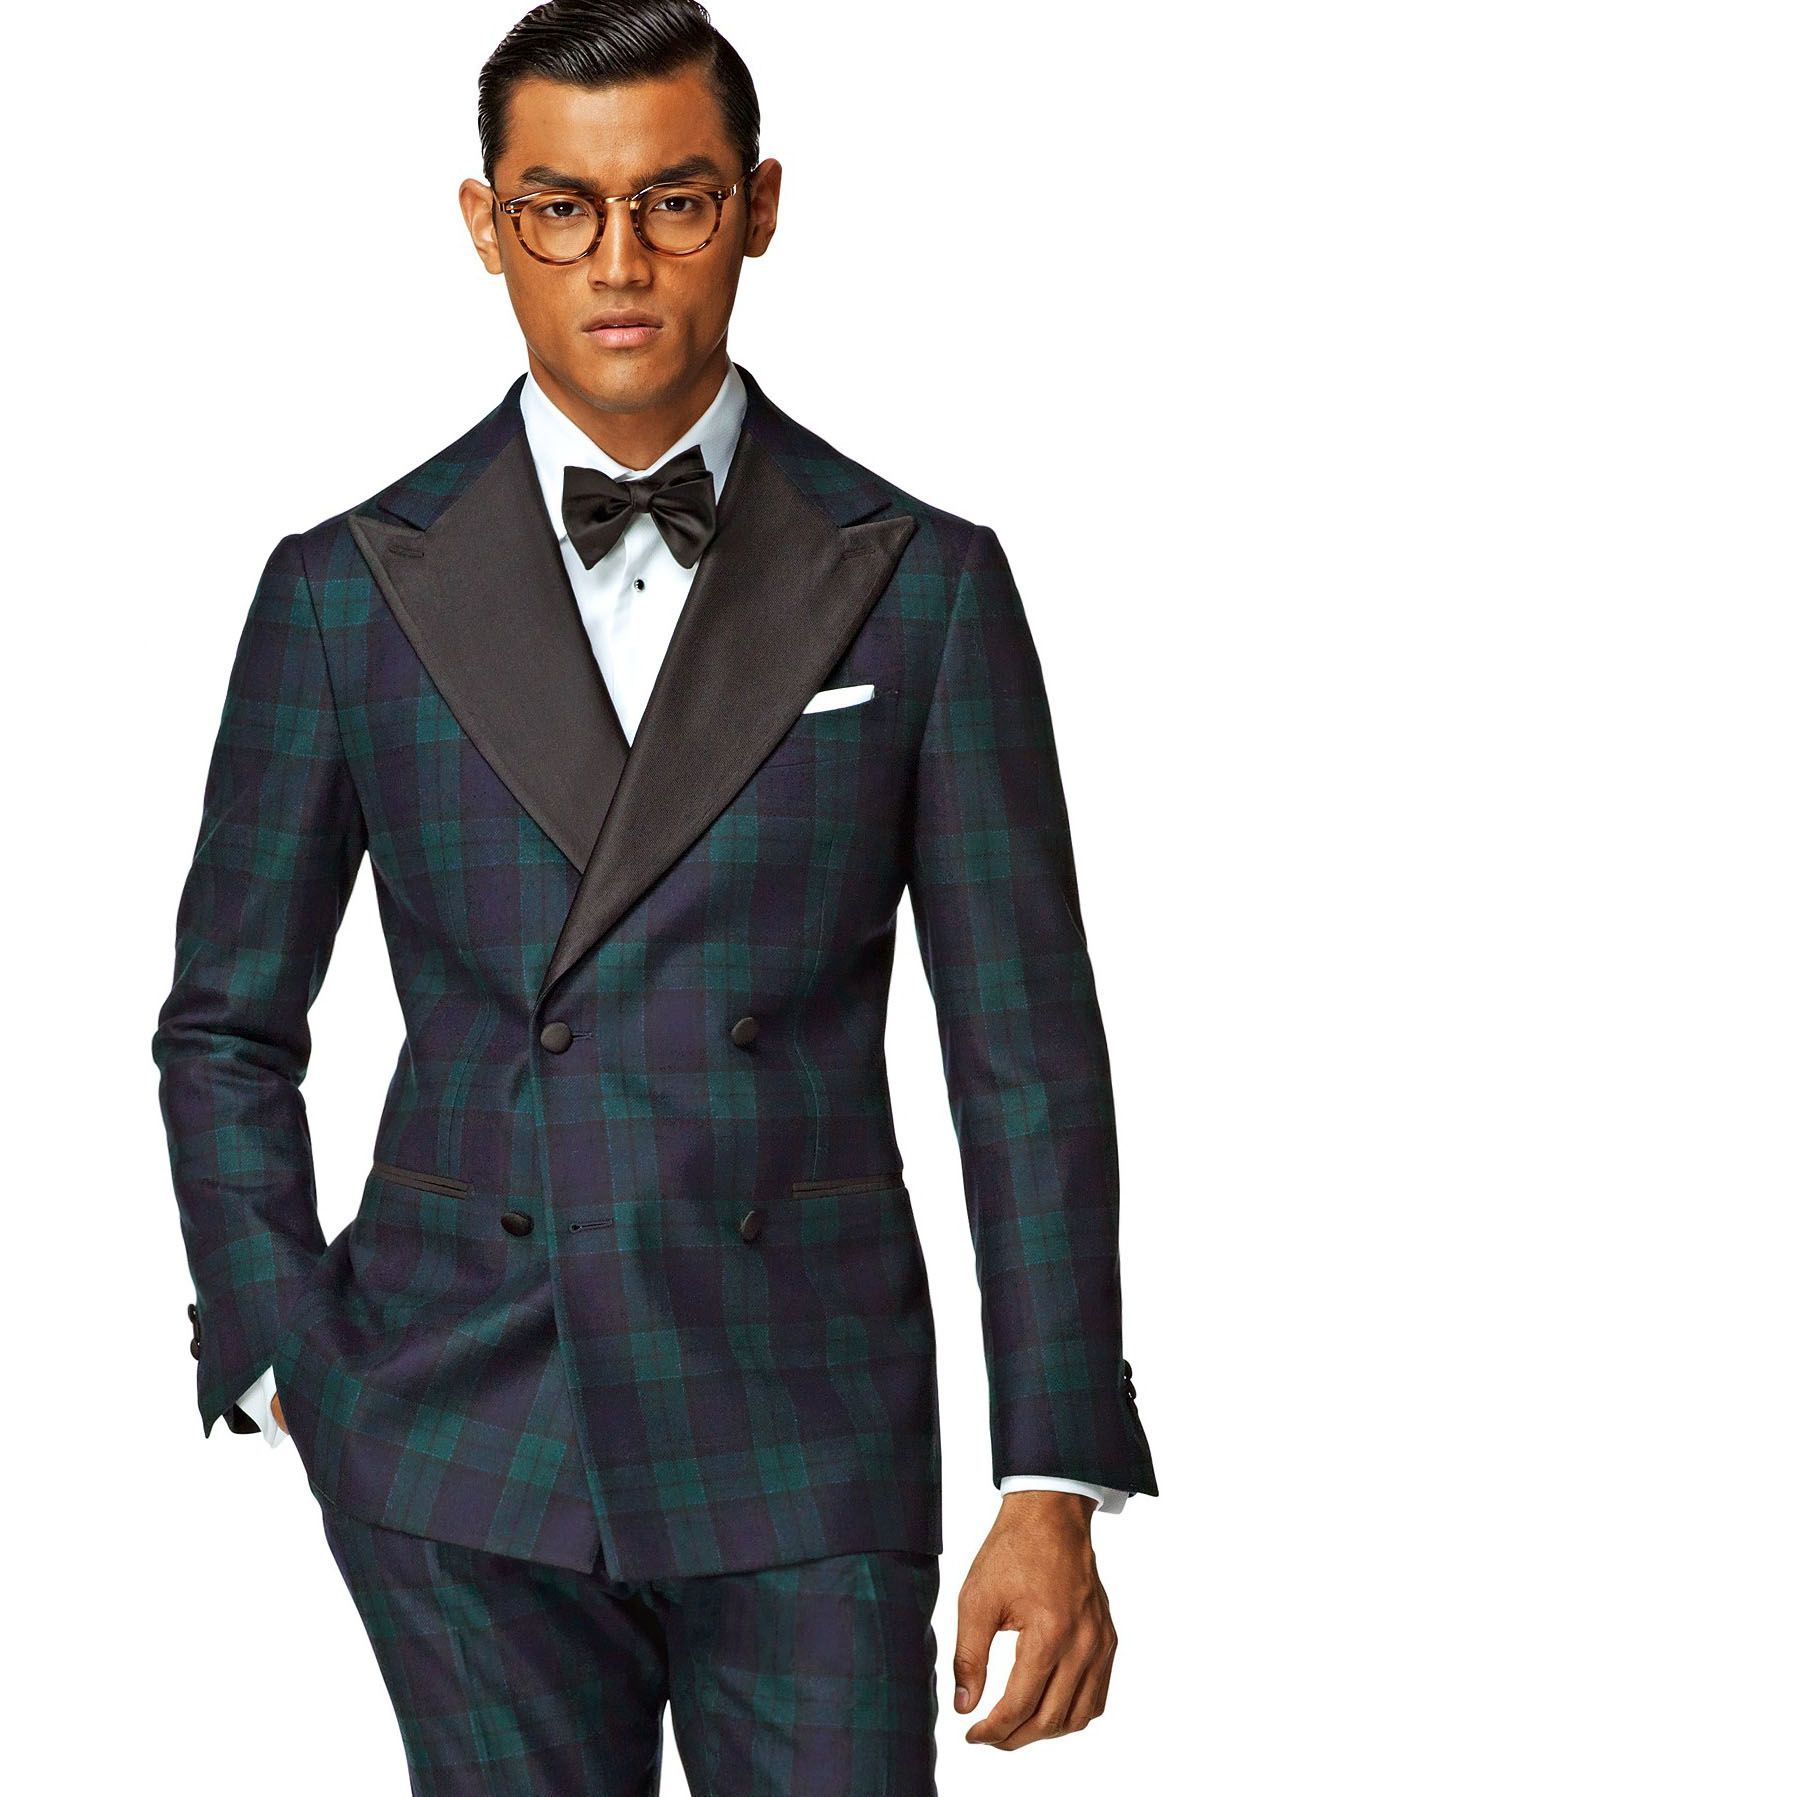 A sure way to stand out at any formal event, this blue checked Manhattan tux sublimely breaks away from the black tie conventions.  http://eu.suitsupply.com/nl_NL/eveningwear-2014